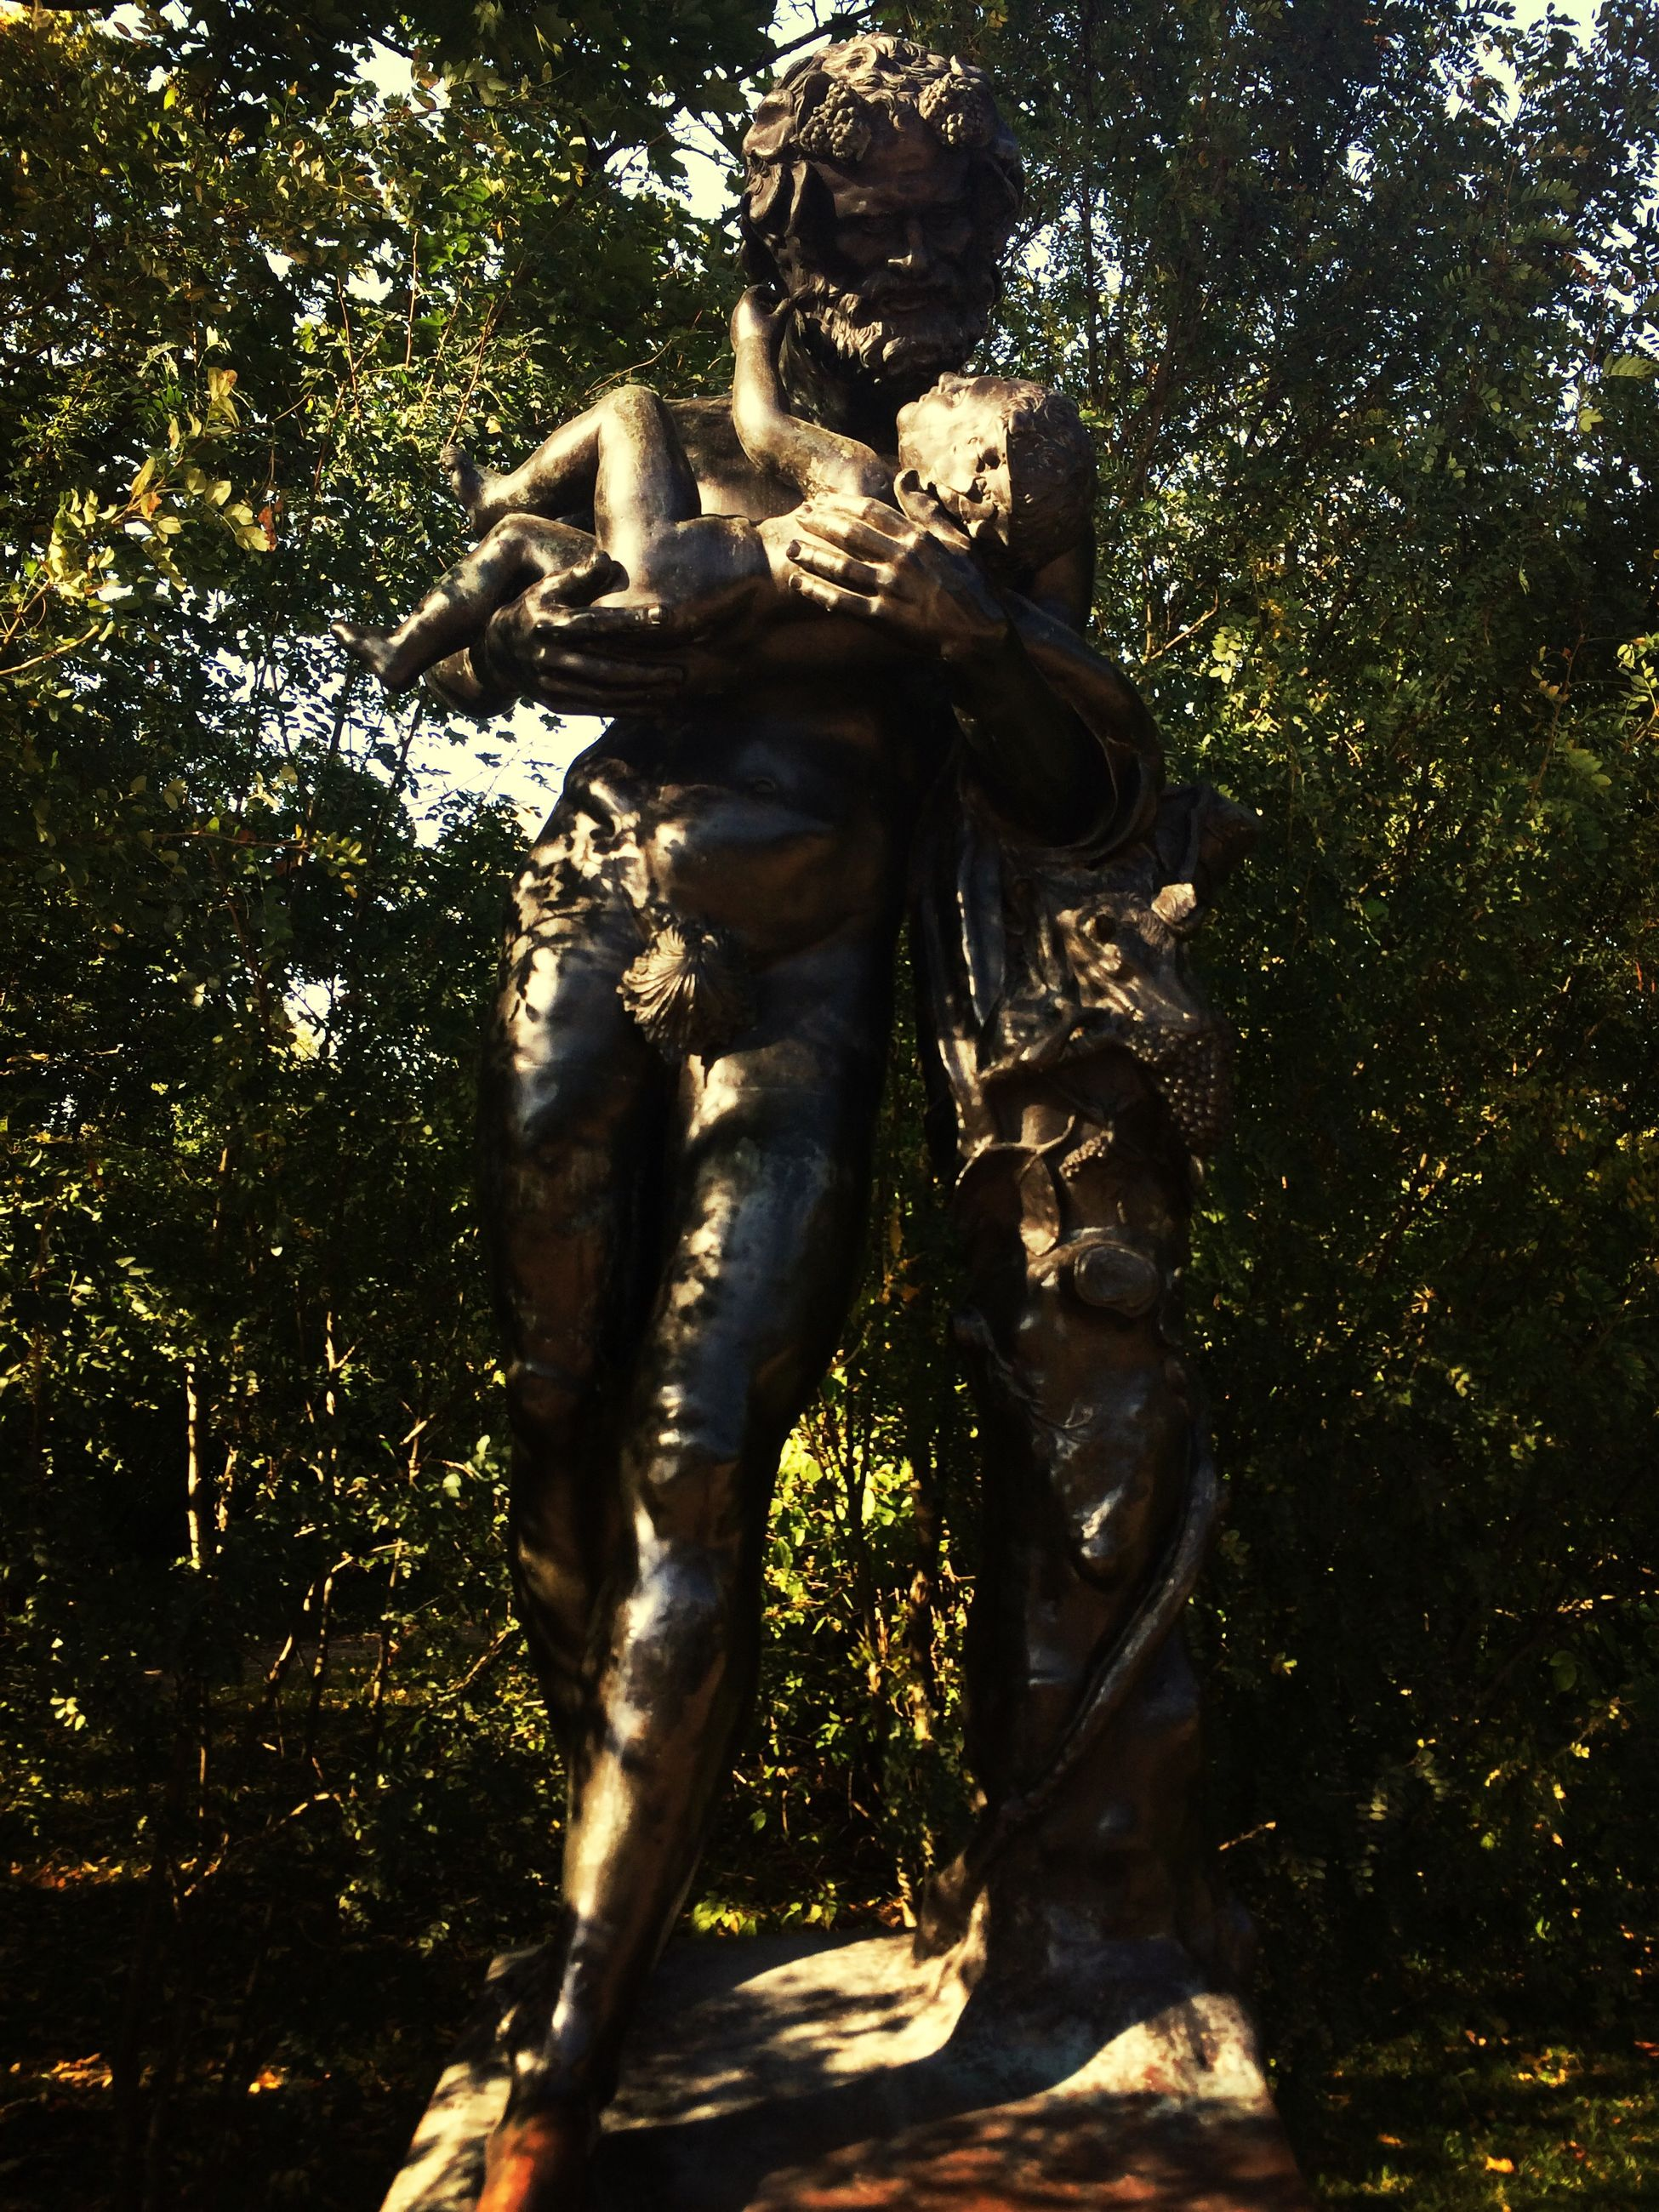 tree, statue, sculpture, human representation, sunlight, nature, day, outdoors, art, growth, forest, no people, art and craft, field, branch, creativity, park - man made space, shadow, standing